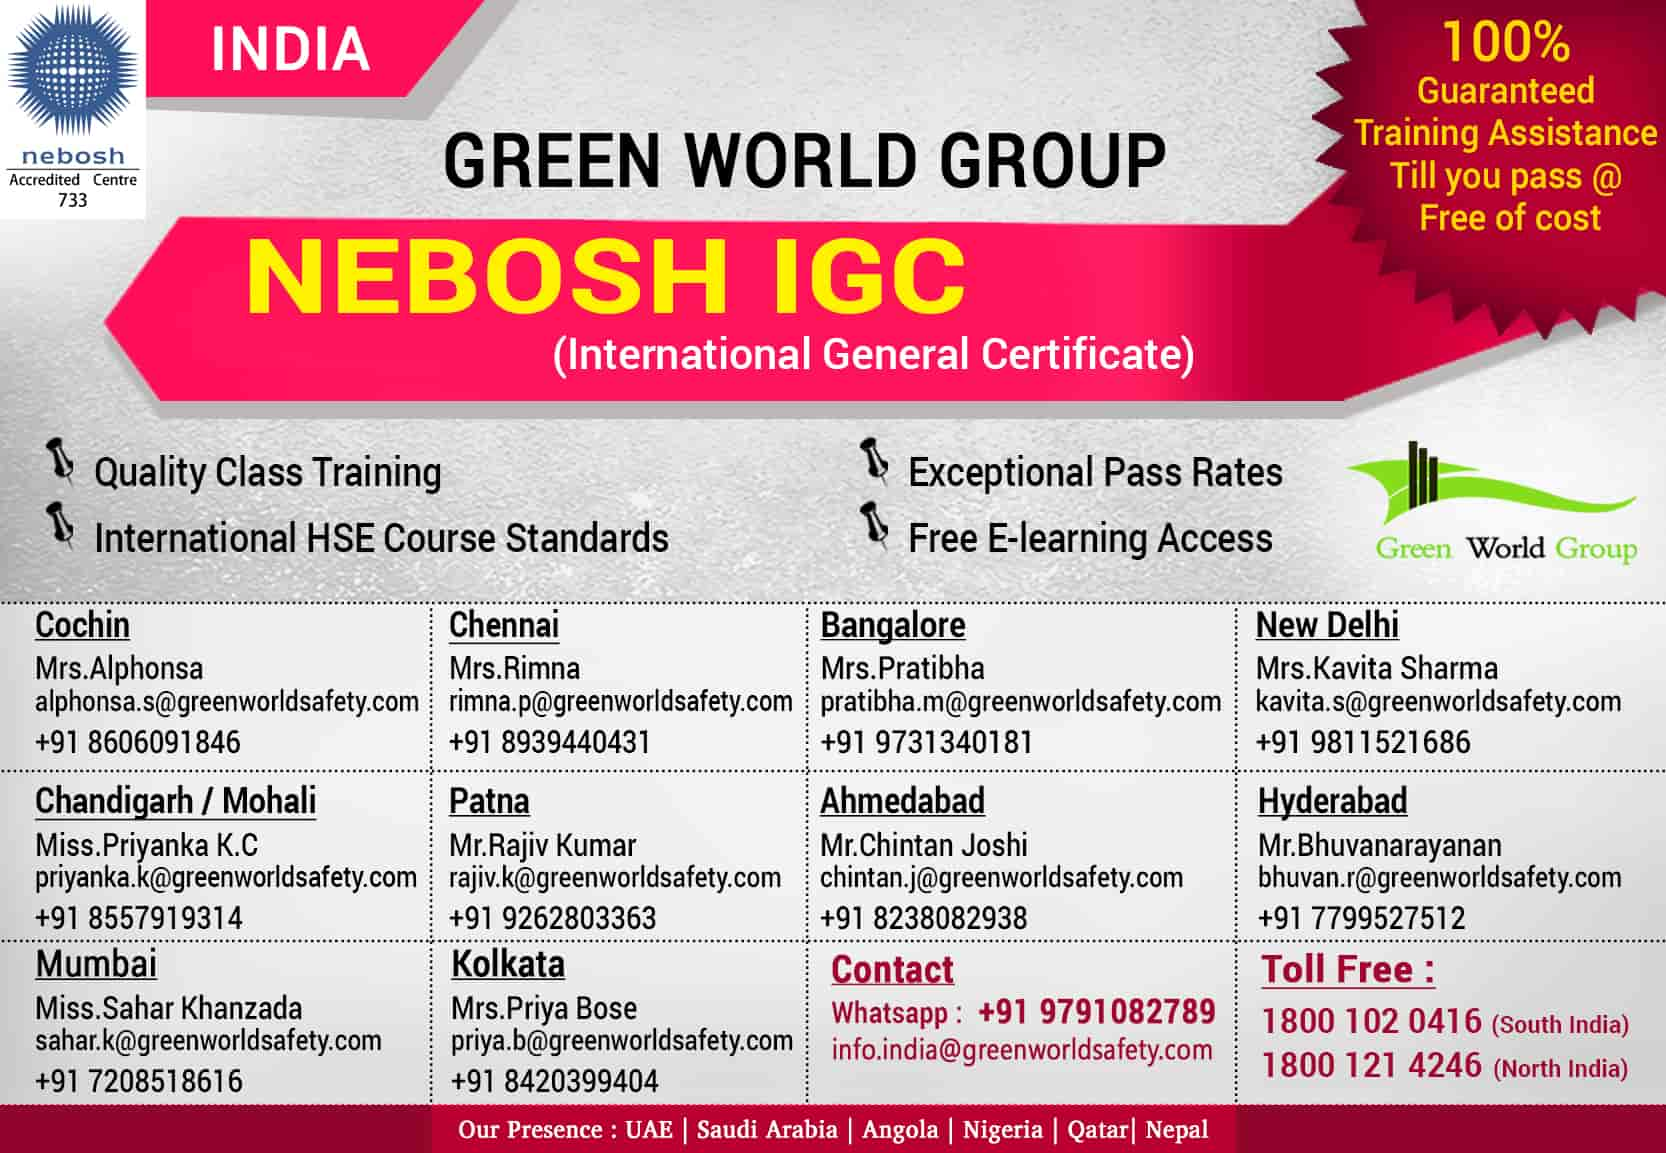 NEBOSH-IGC_December-Offer_2018_Cochin